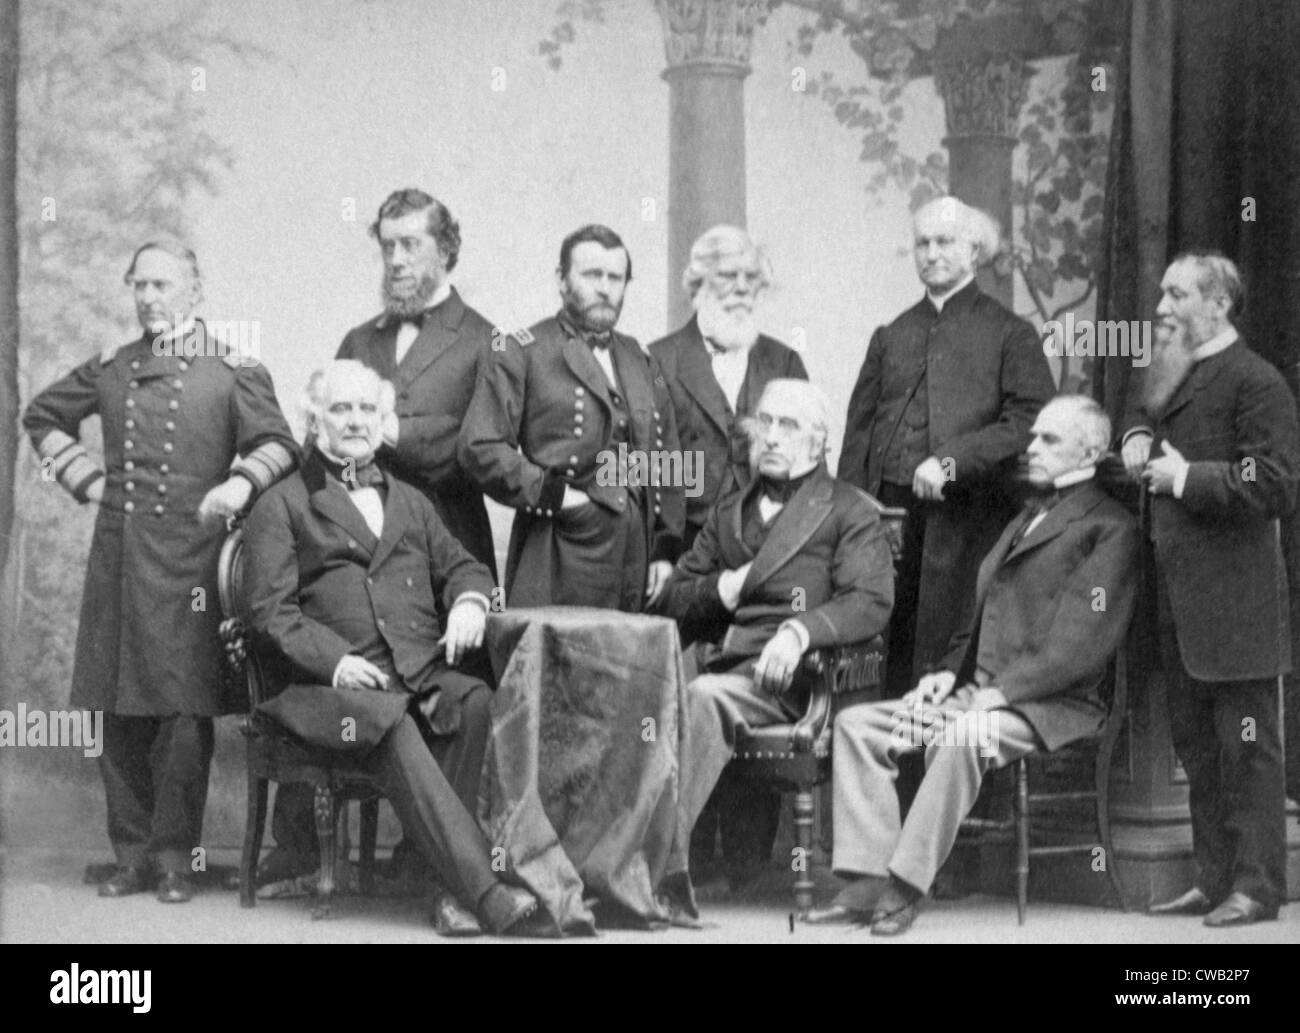 Admiral David Farragut Standing Left General Ulysses S Grant Third With Other Civil War Leaders And